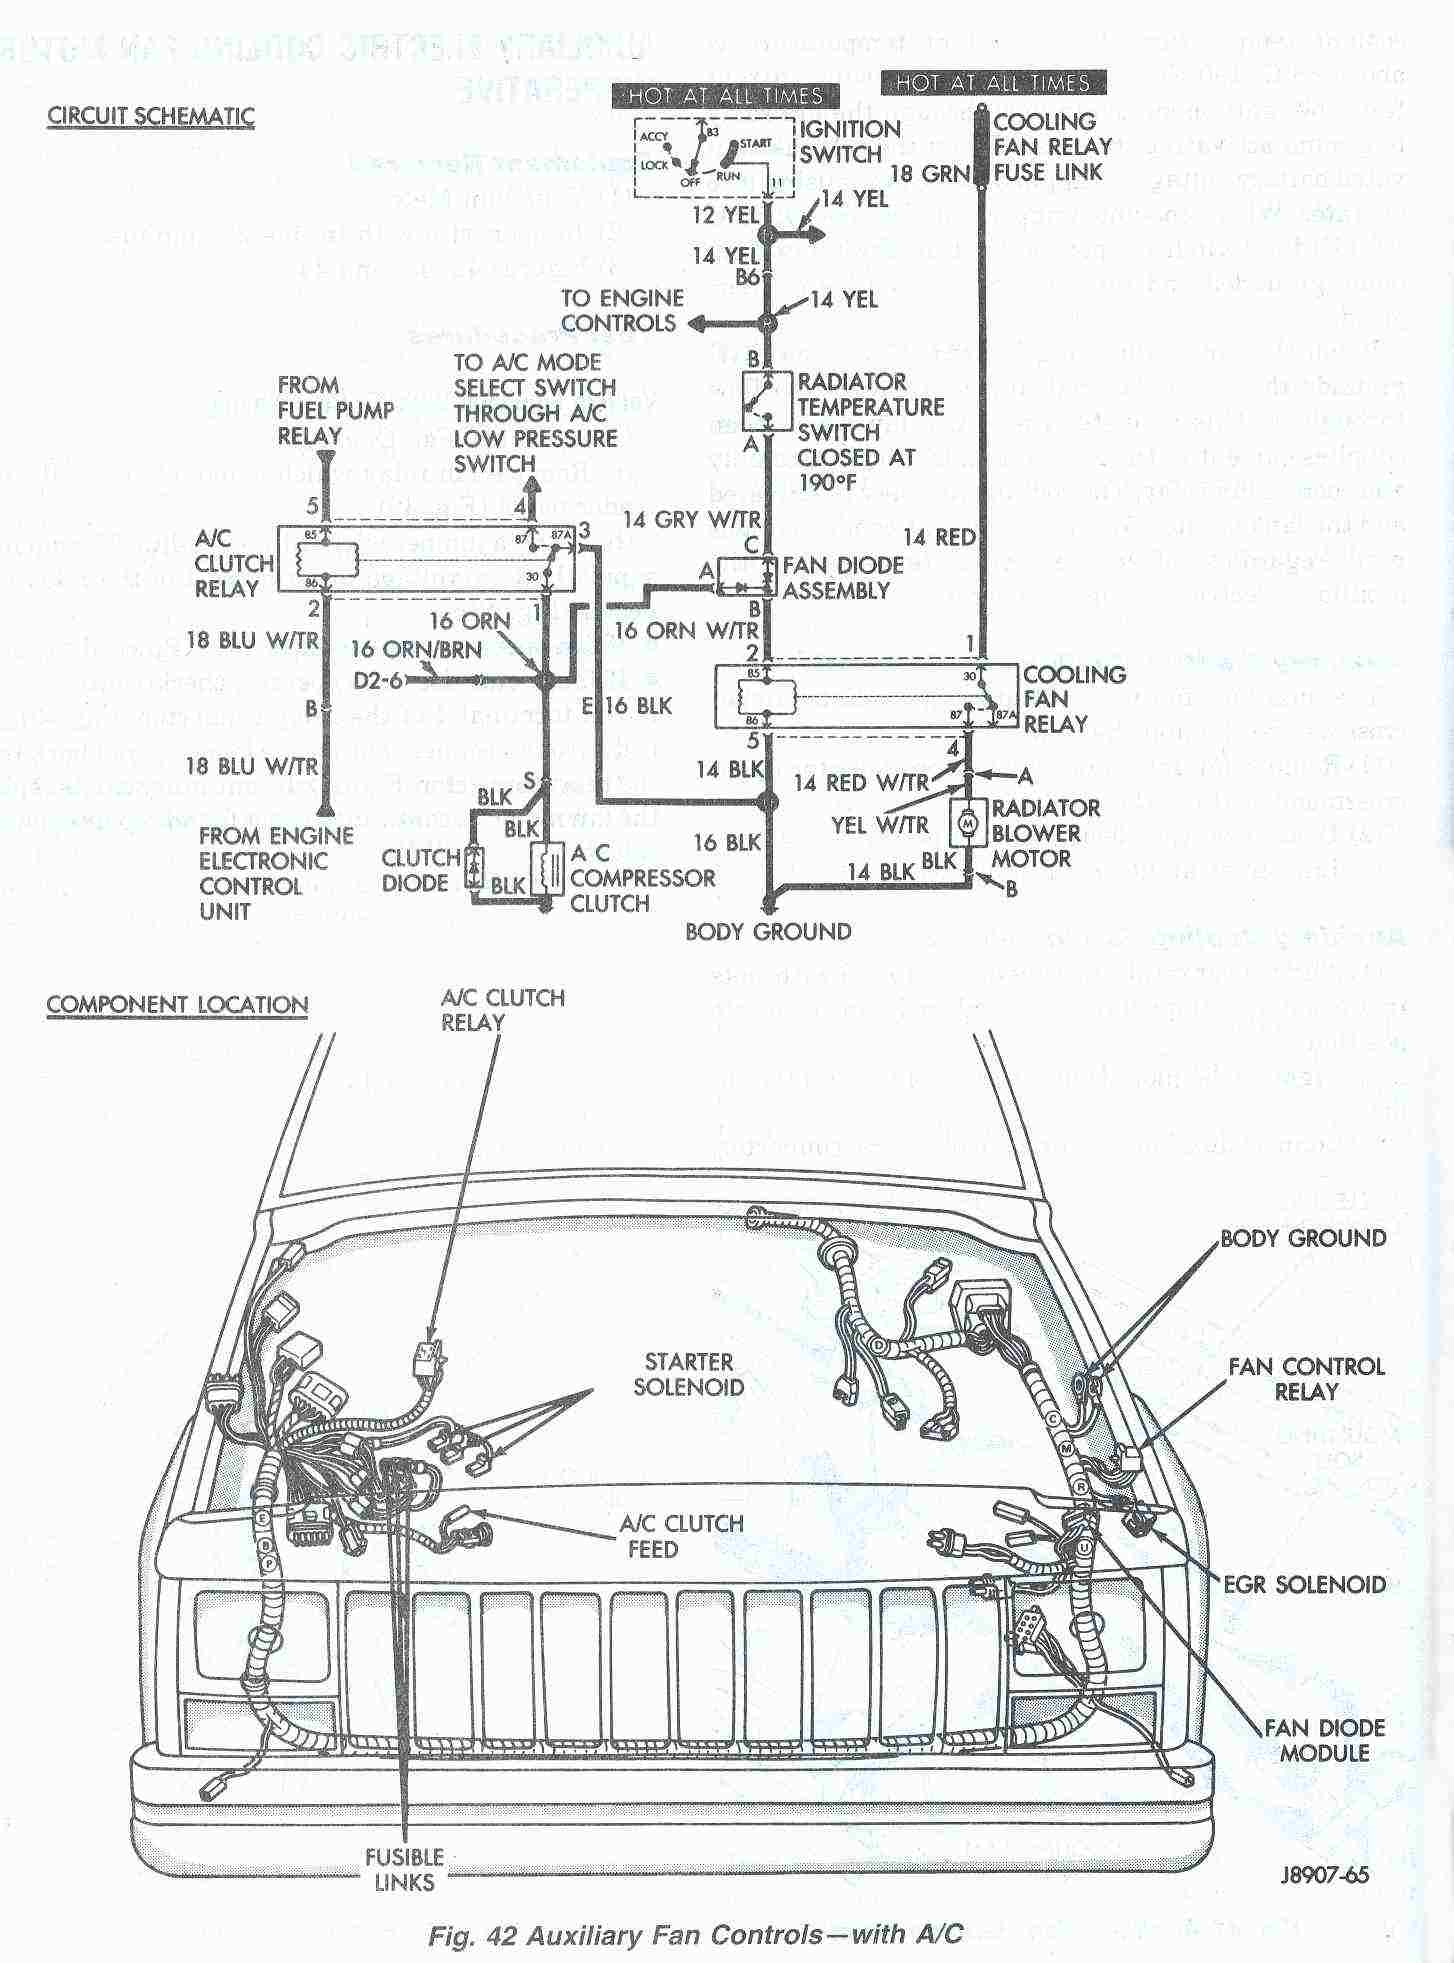 Auxiliary_Fan_Schematic_Fig_42 jeep cherokee cooling system electric cooling fan 2001 Jeep Cherokee Wiring Schematic at gsmx.co